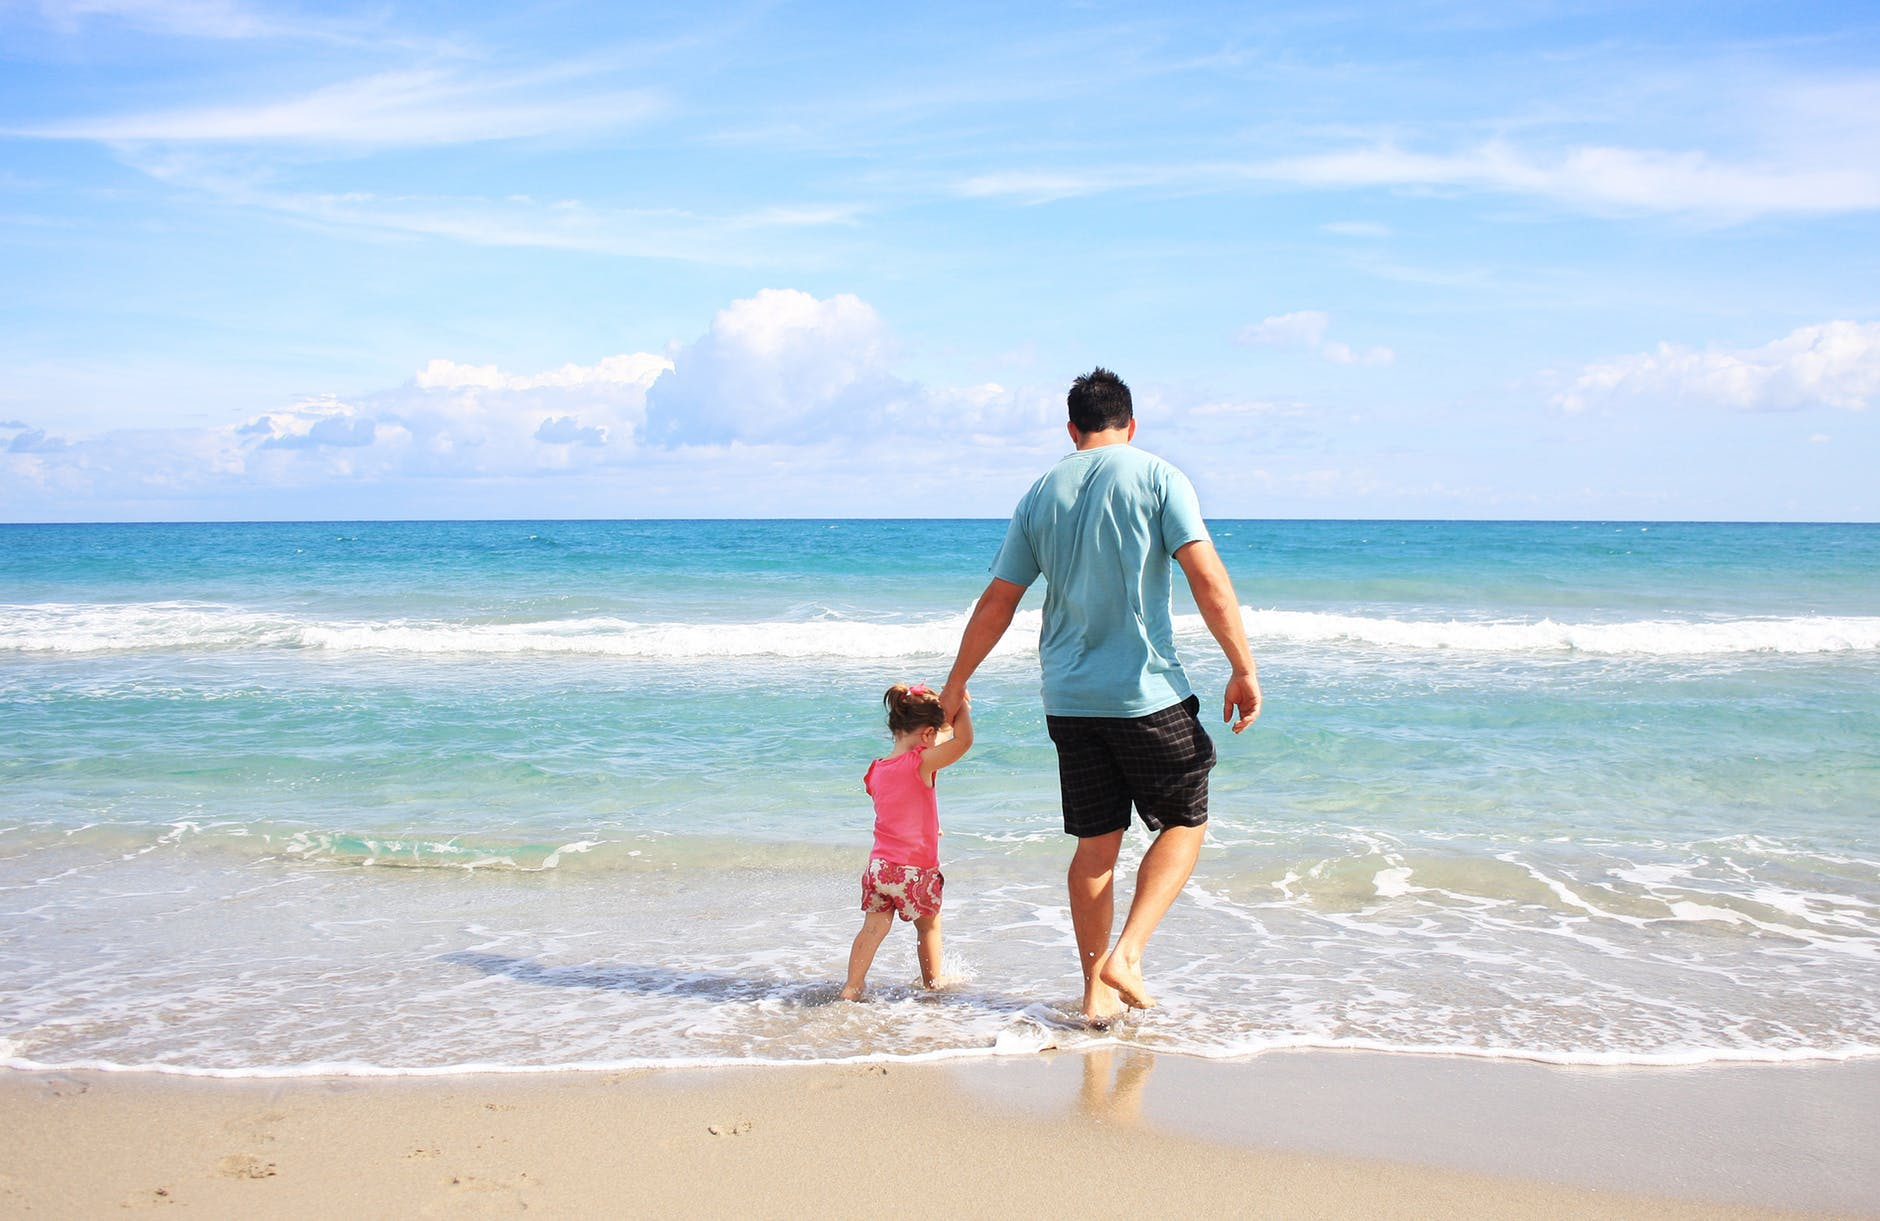 father and kid walking on the beach holding hands